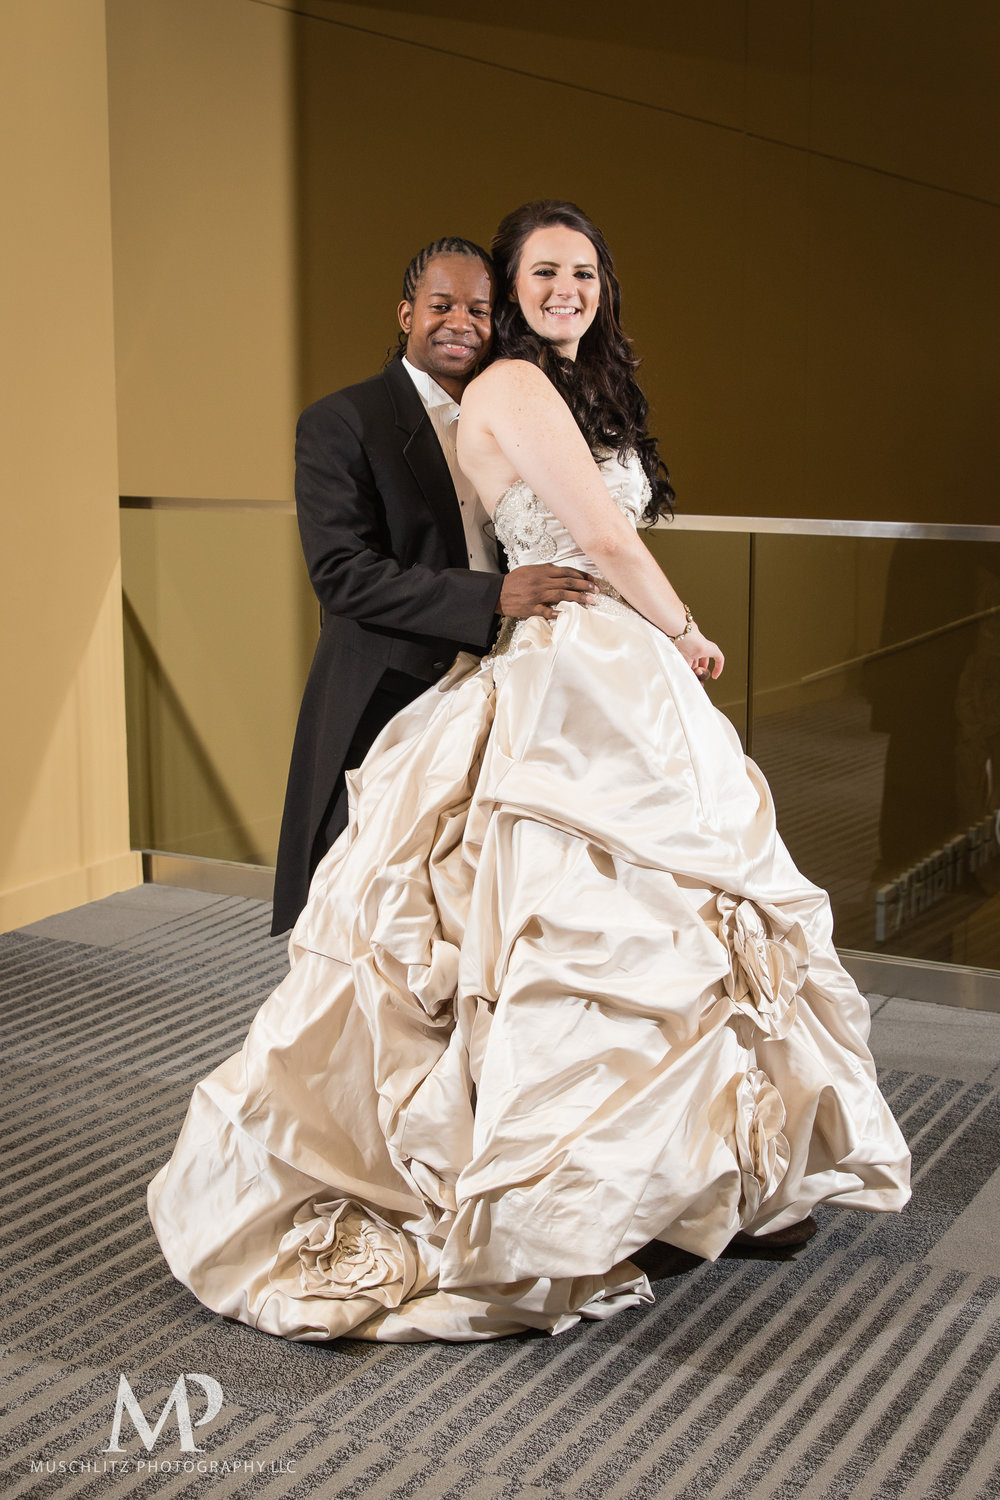 greater-columbus-convention-center-winter-wedding-ceremony-reception-portraits-columbus-ohio-muschlitz-photography-057.JPG